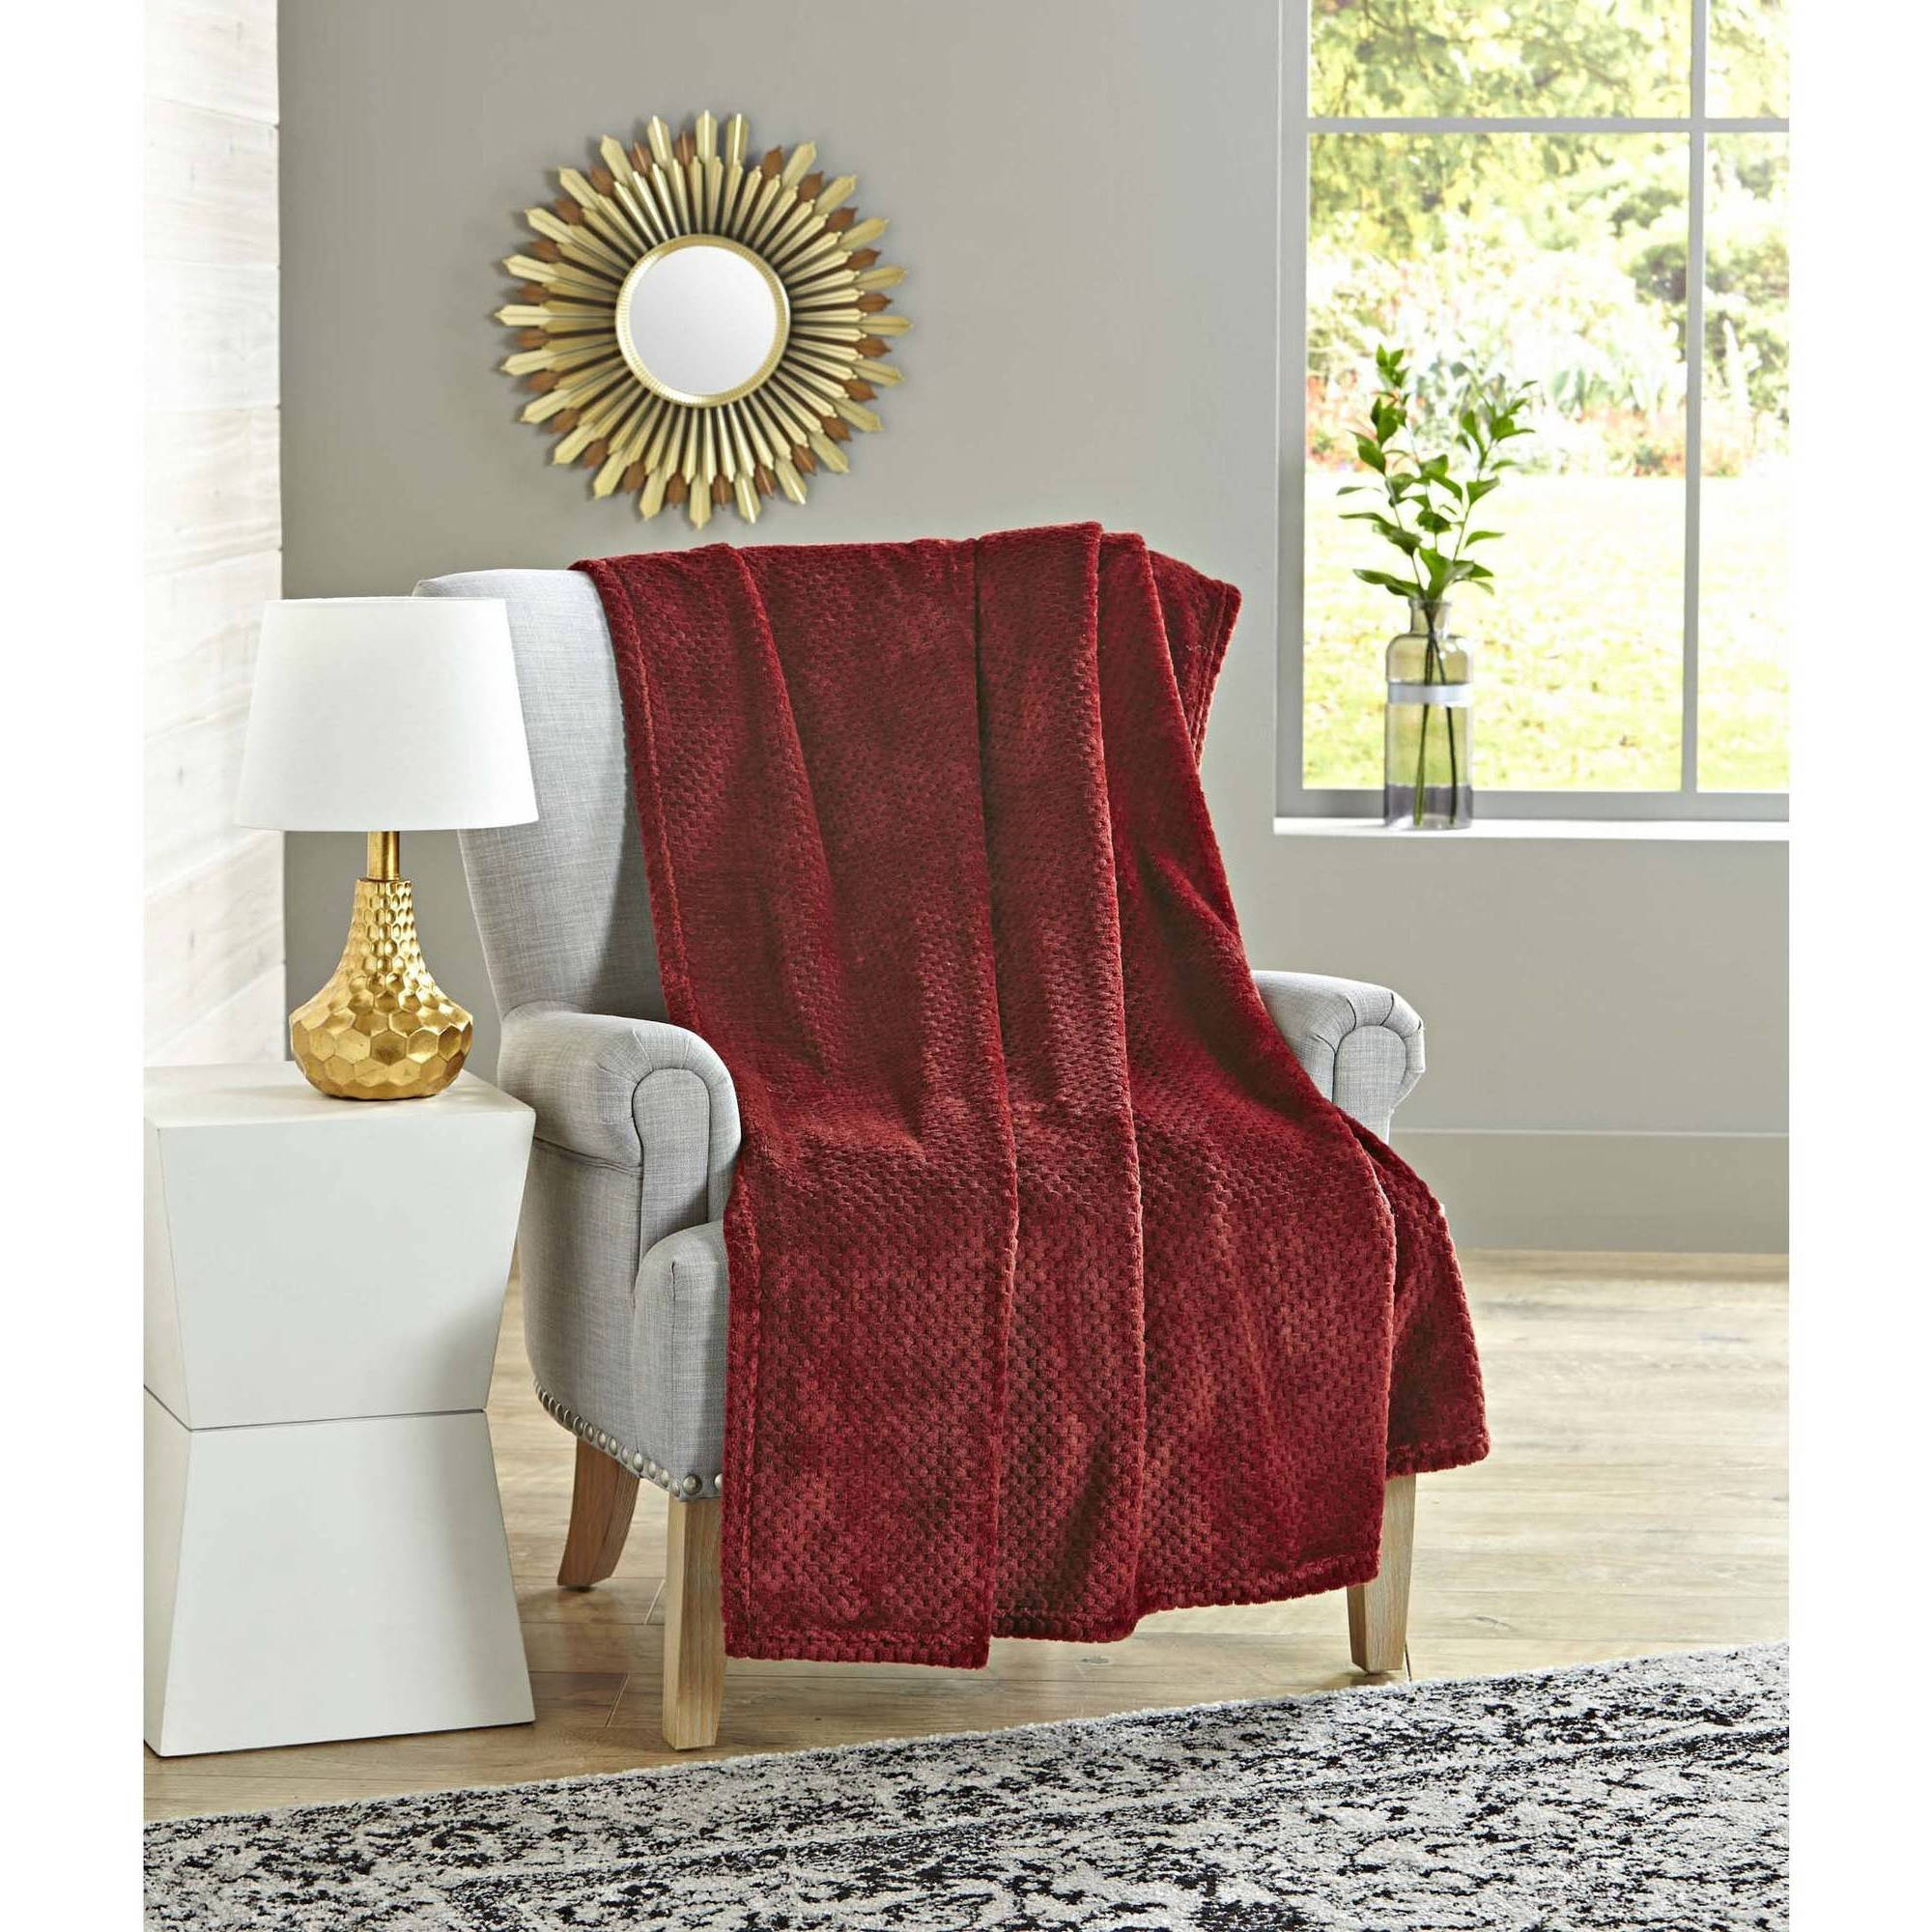 Better Homes and Gardens Oversized Velvet Plush Throw